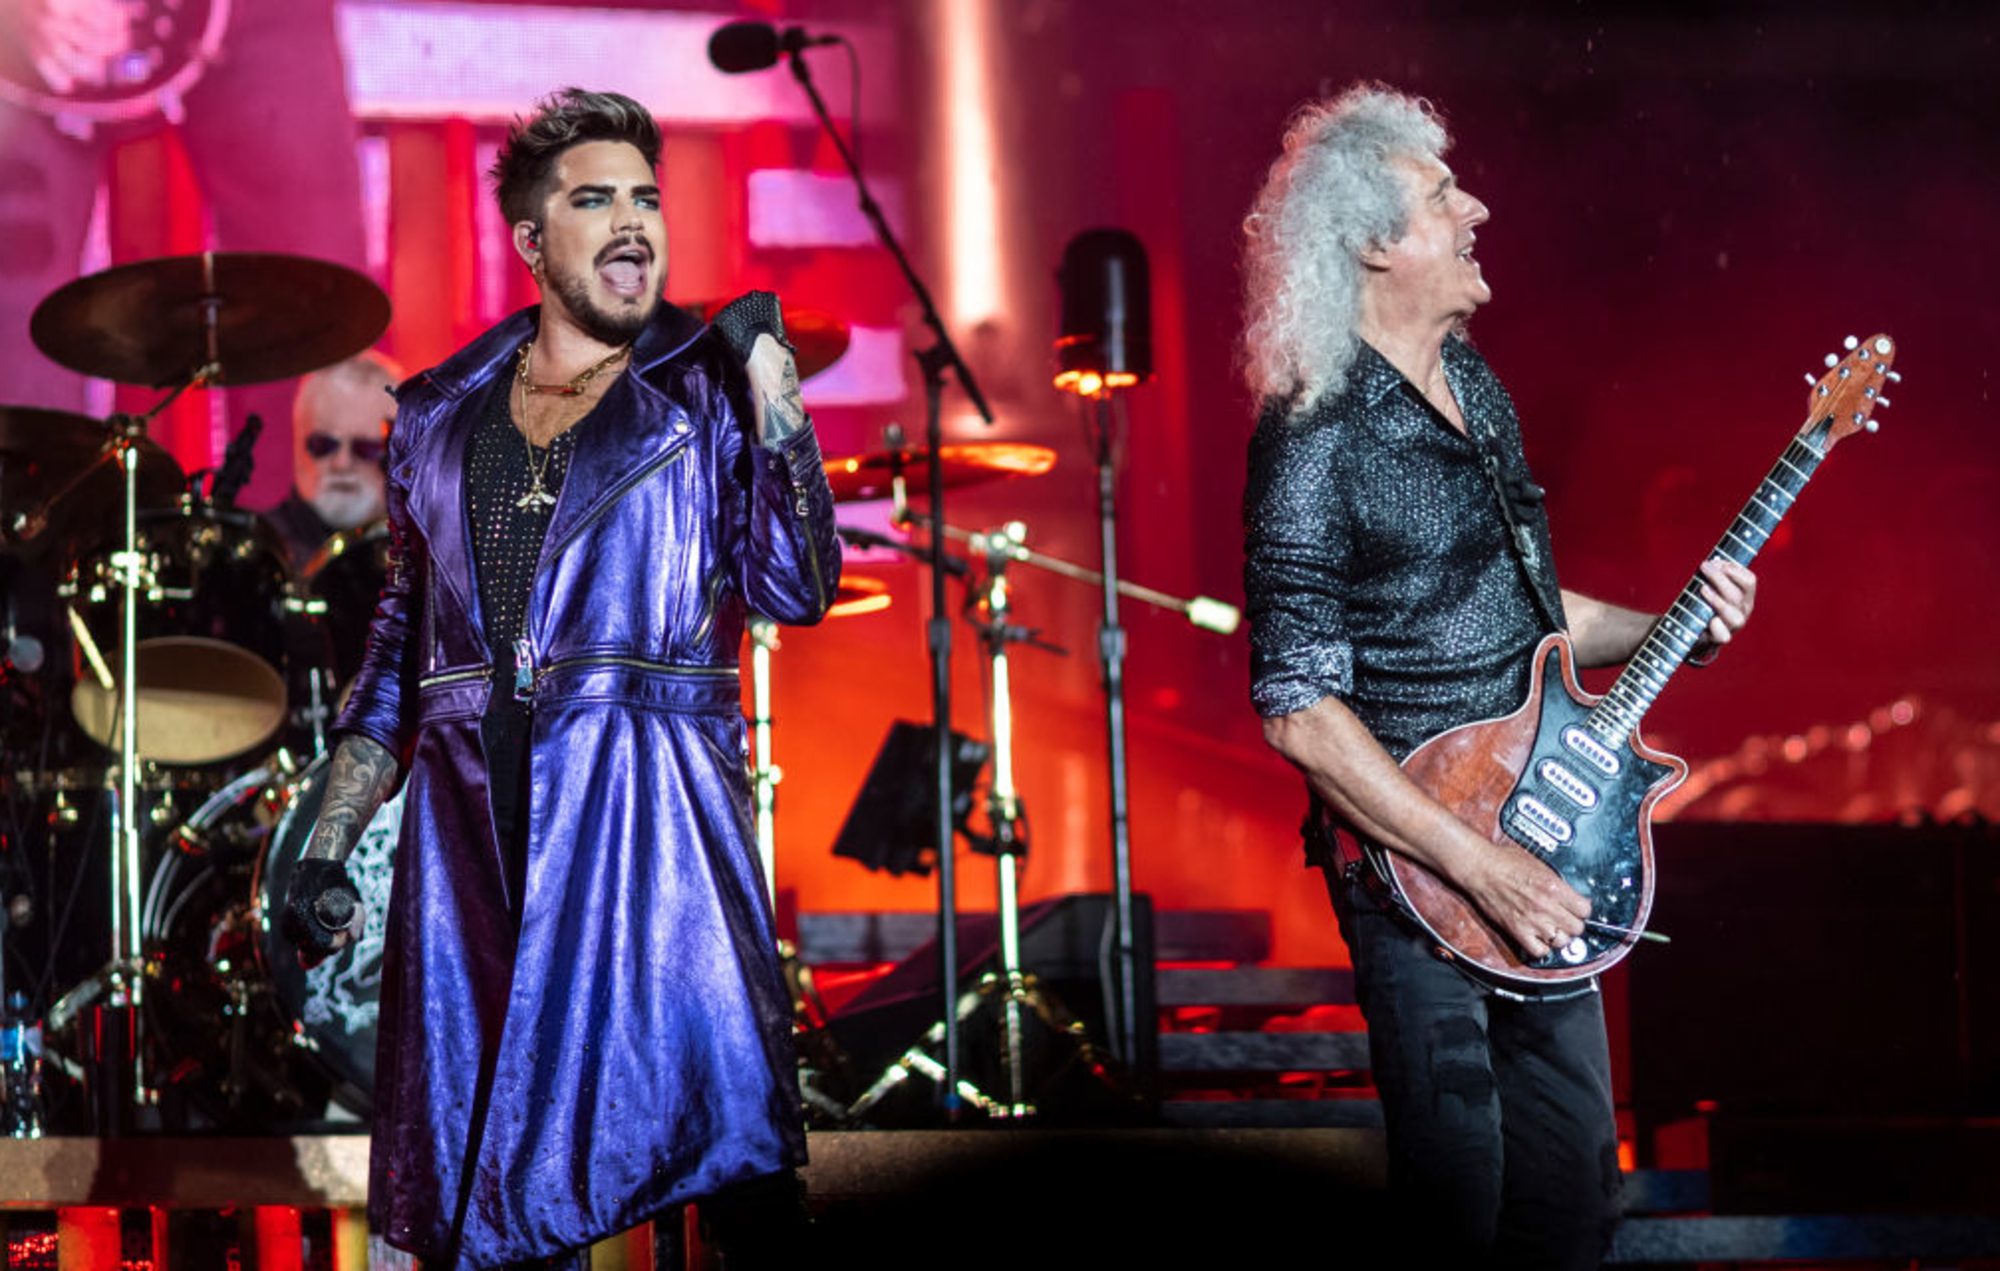 Queen reschedule UK 'Rhapsody Tour' for 2022 and add new dates